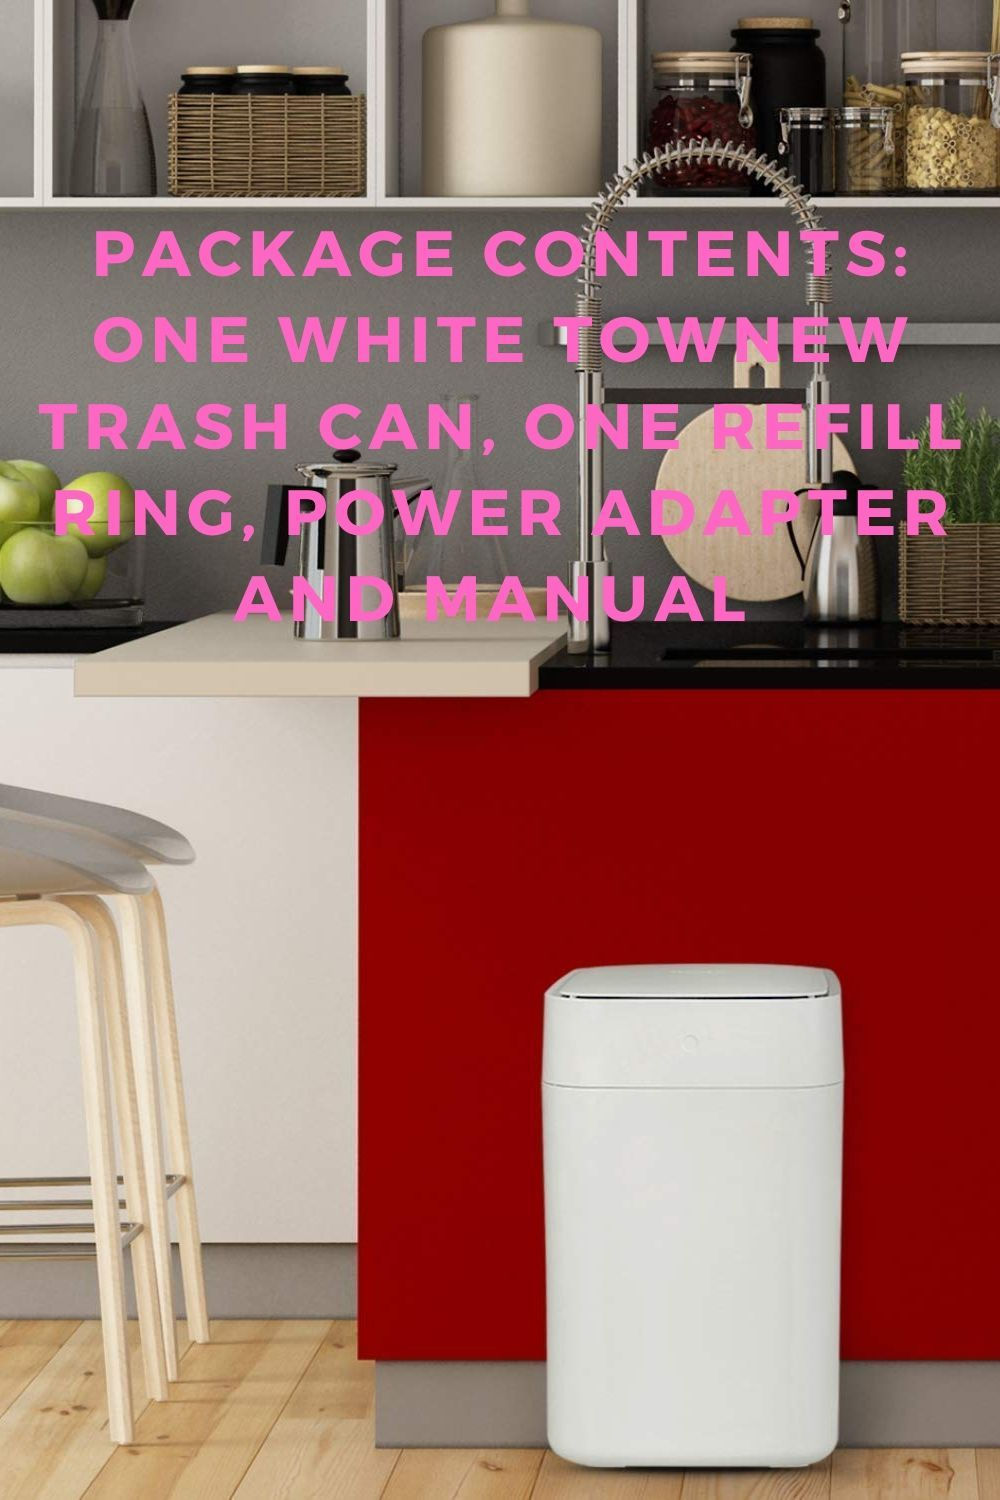 Townew Official Biodegradable Refill Rings For Smart Kitchen In 2020 Biodegradable Products Trash Can Smart Kitchen